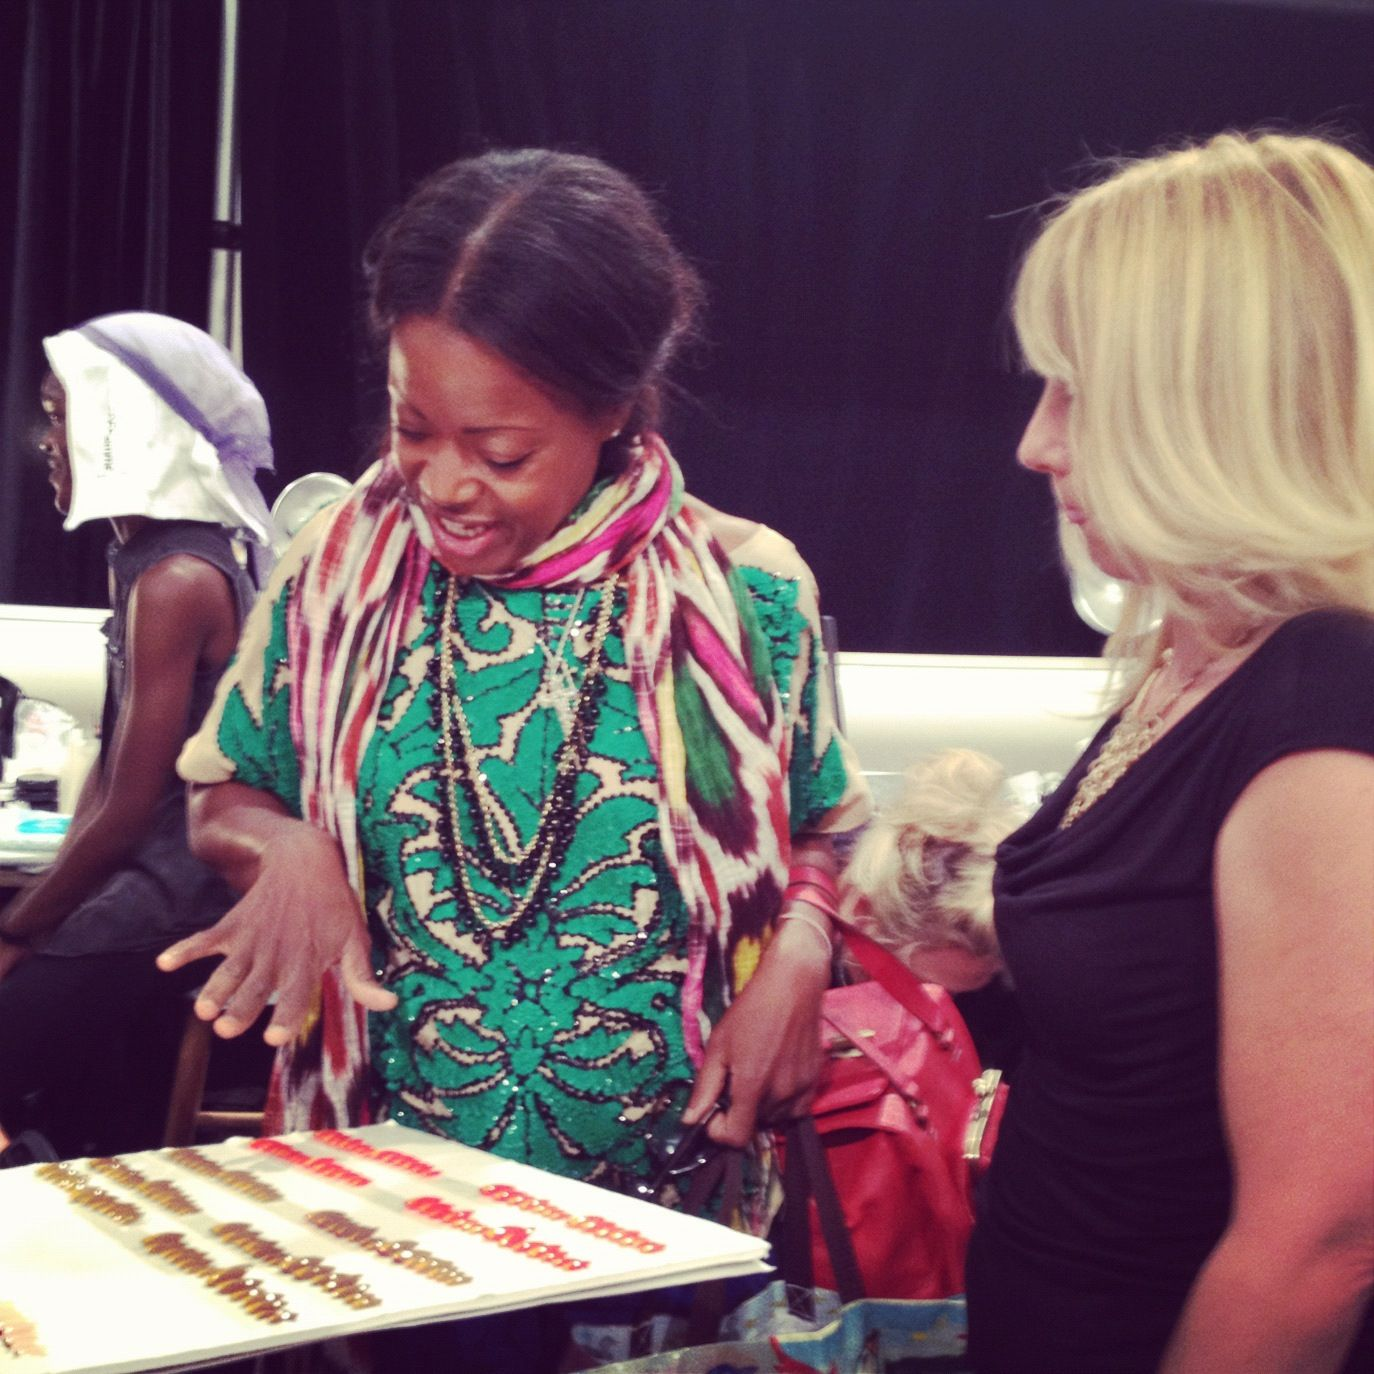 Tracy Reese and Sally Hansen's nail ambassador, Tracylee chatting about the nail designs for today's show. #nyfw